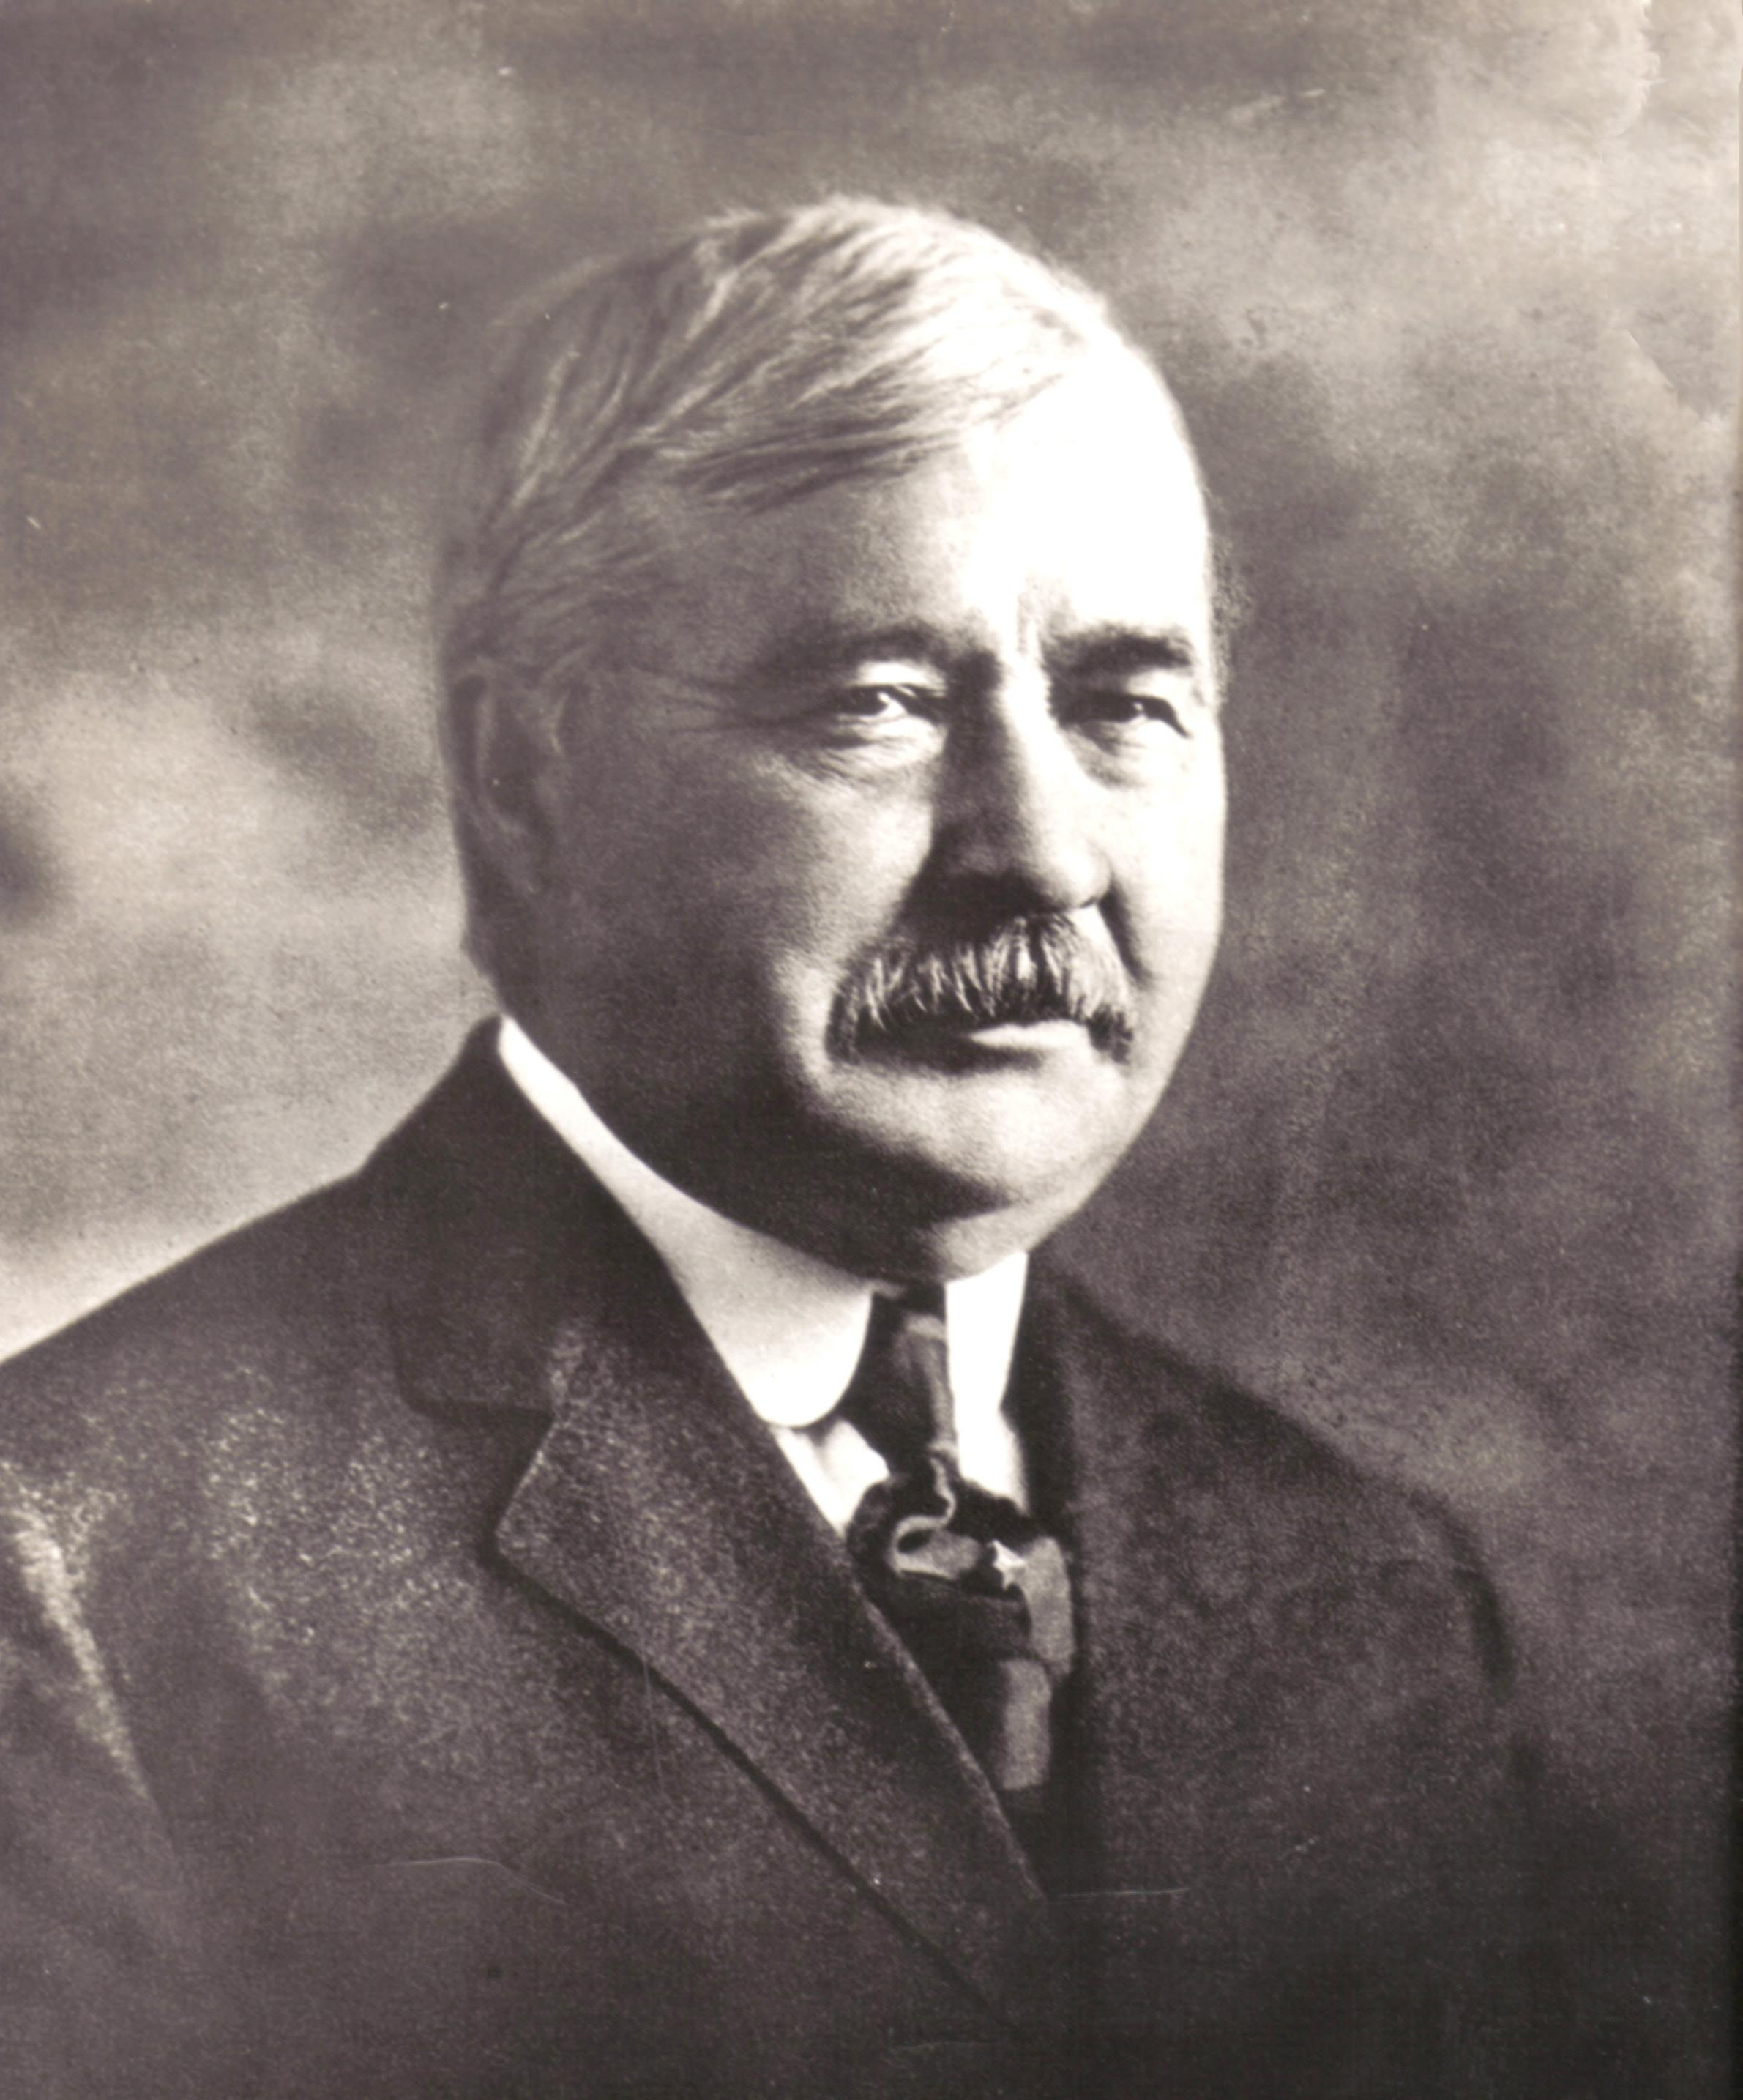 File:Elwood Hayne (Indiana automobile inventor).jpg - Wikimedia Commons